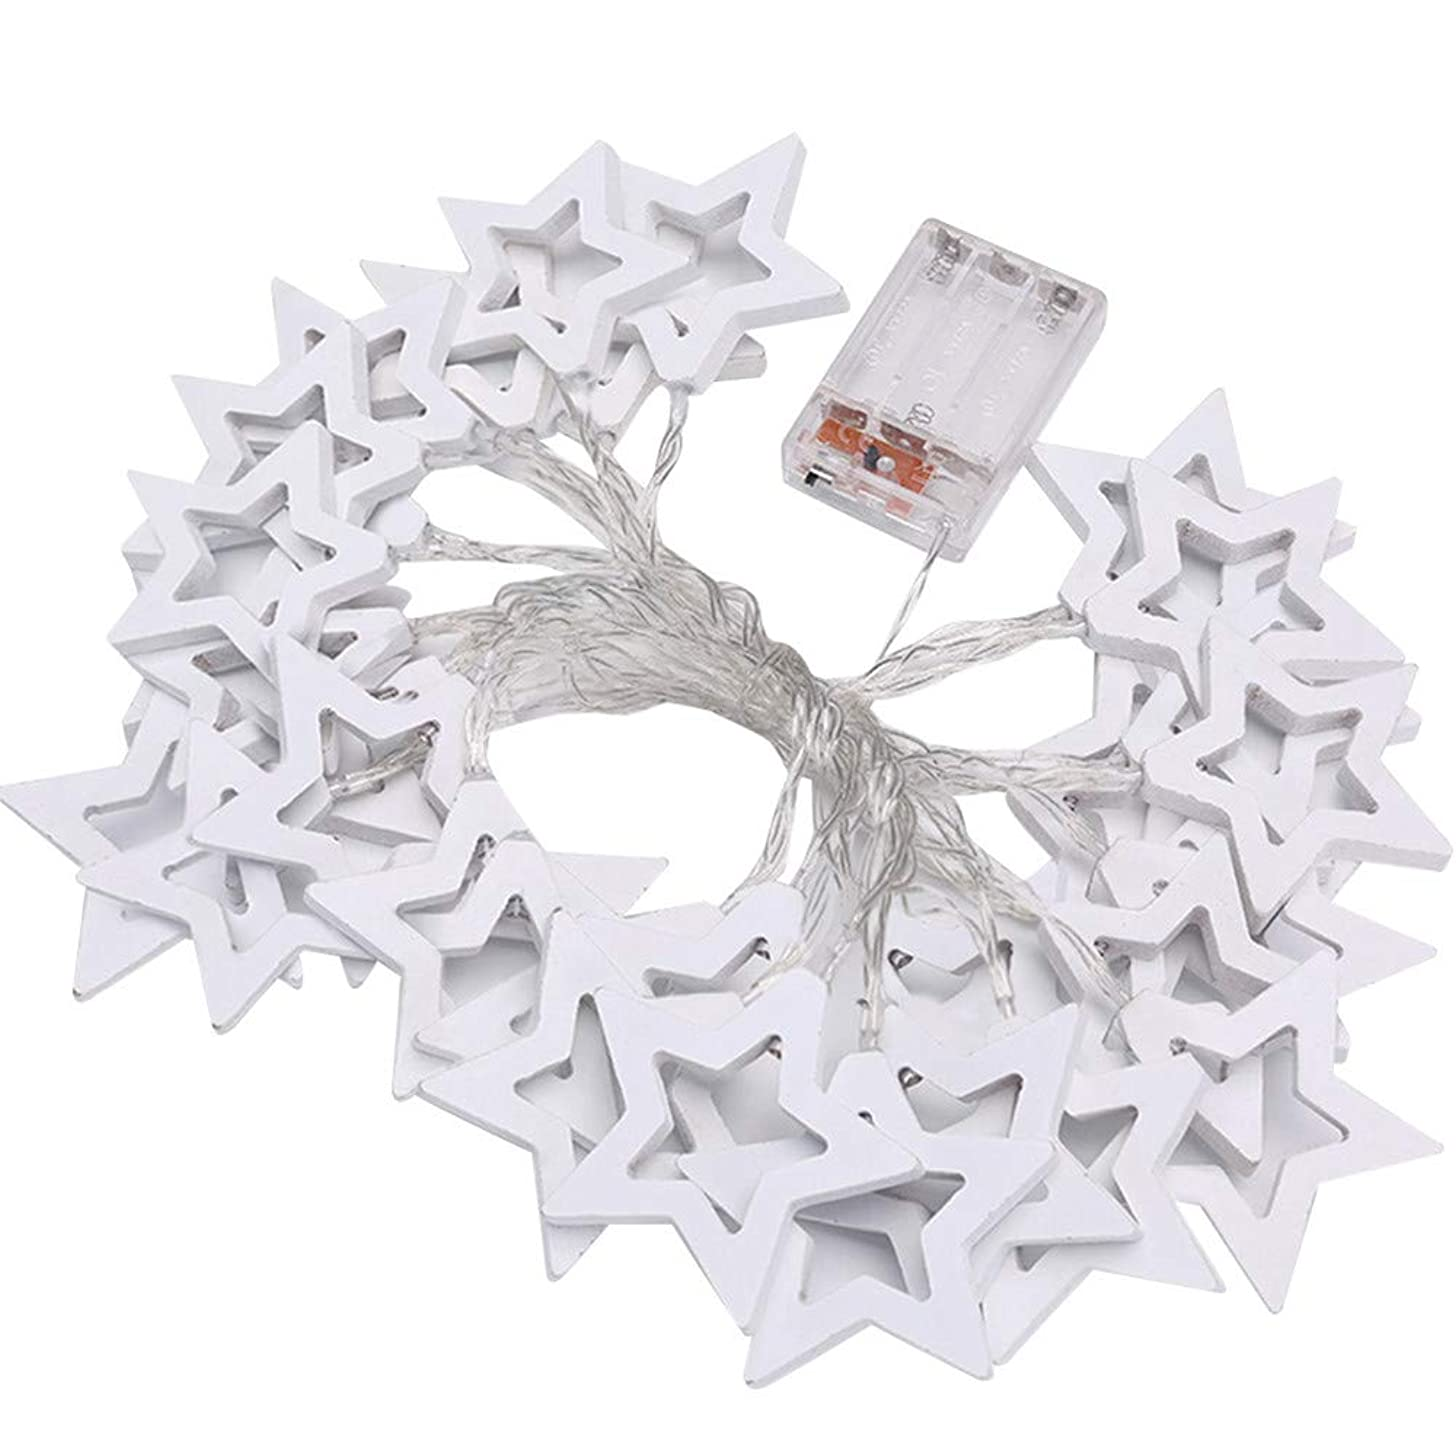 NISWDE LED Star Lights Wooden Star Shape Fairy Lights Battery Operated String Lights for Bedroom Star Lights for Patio Summer Night Outdoor Decor Teepee Lights